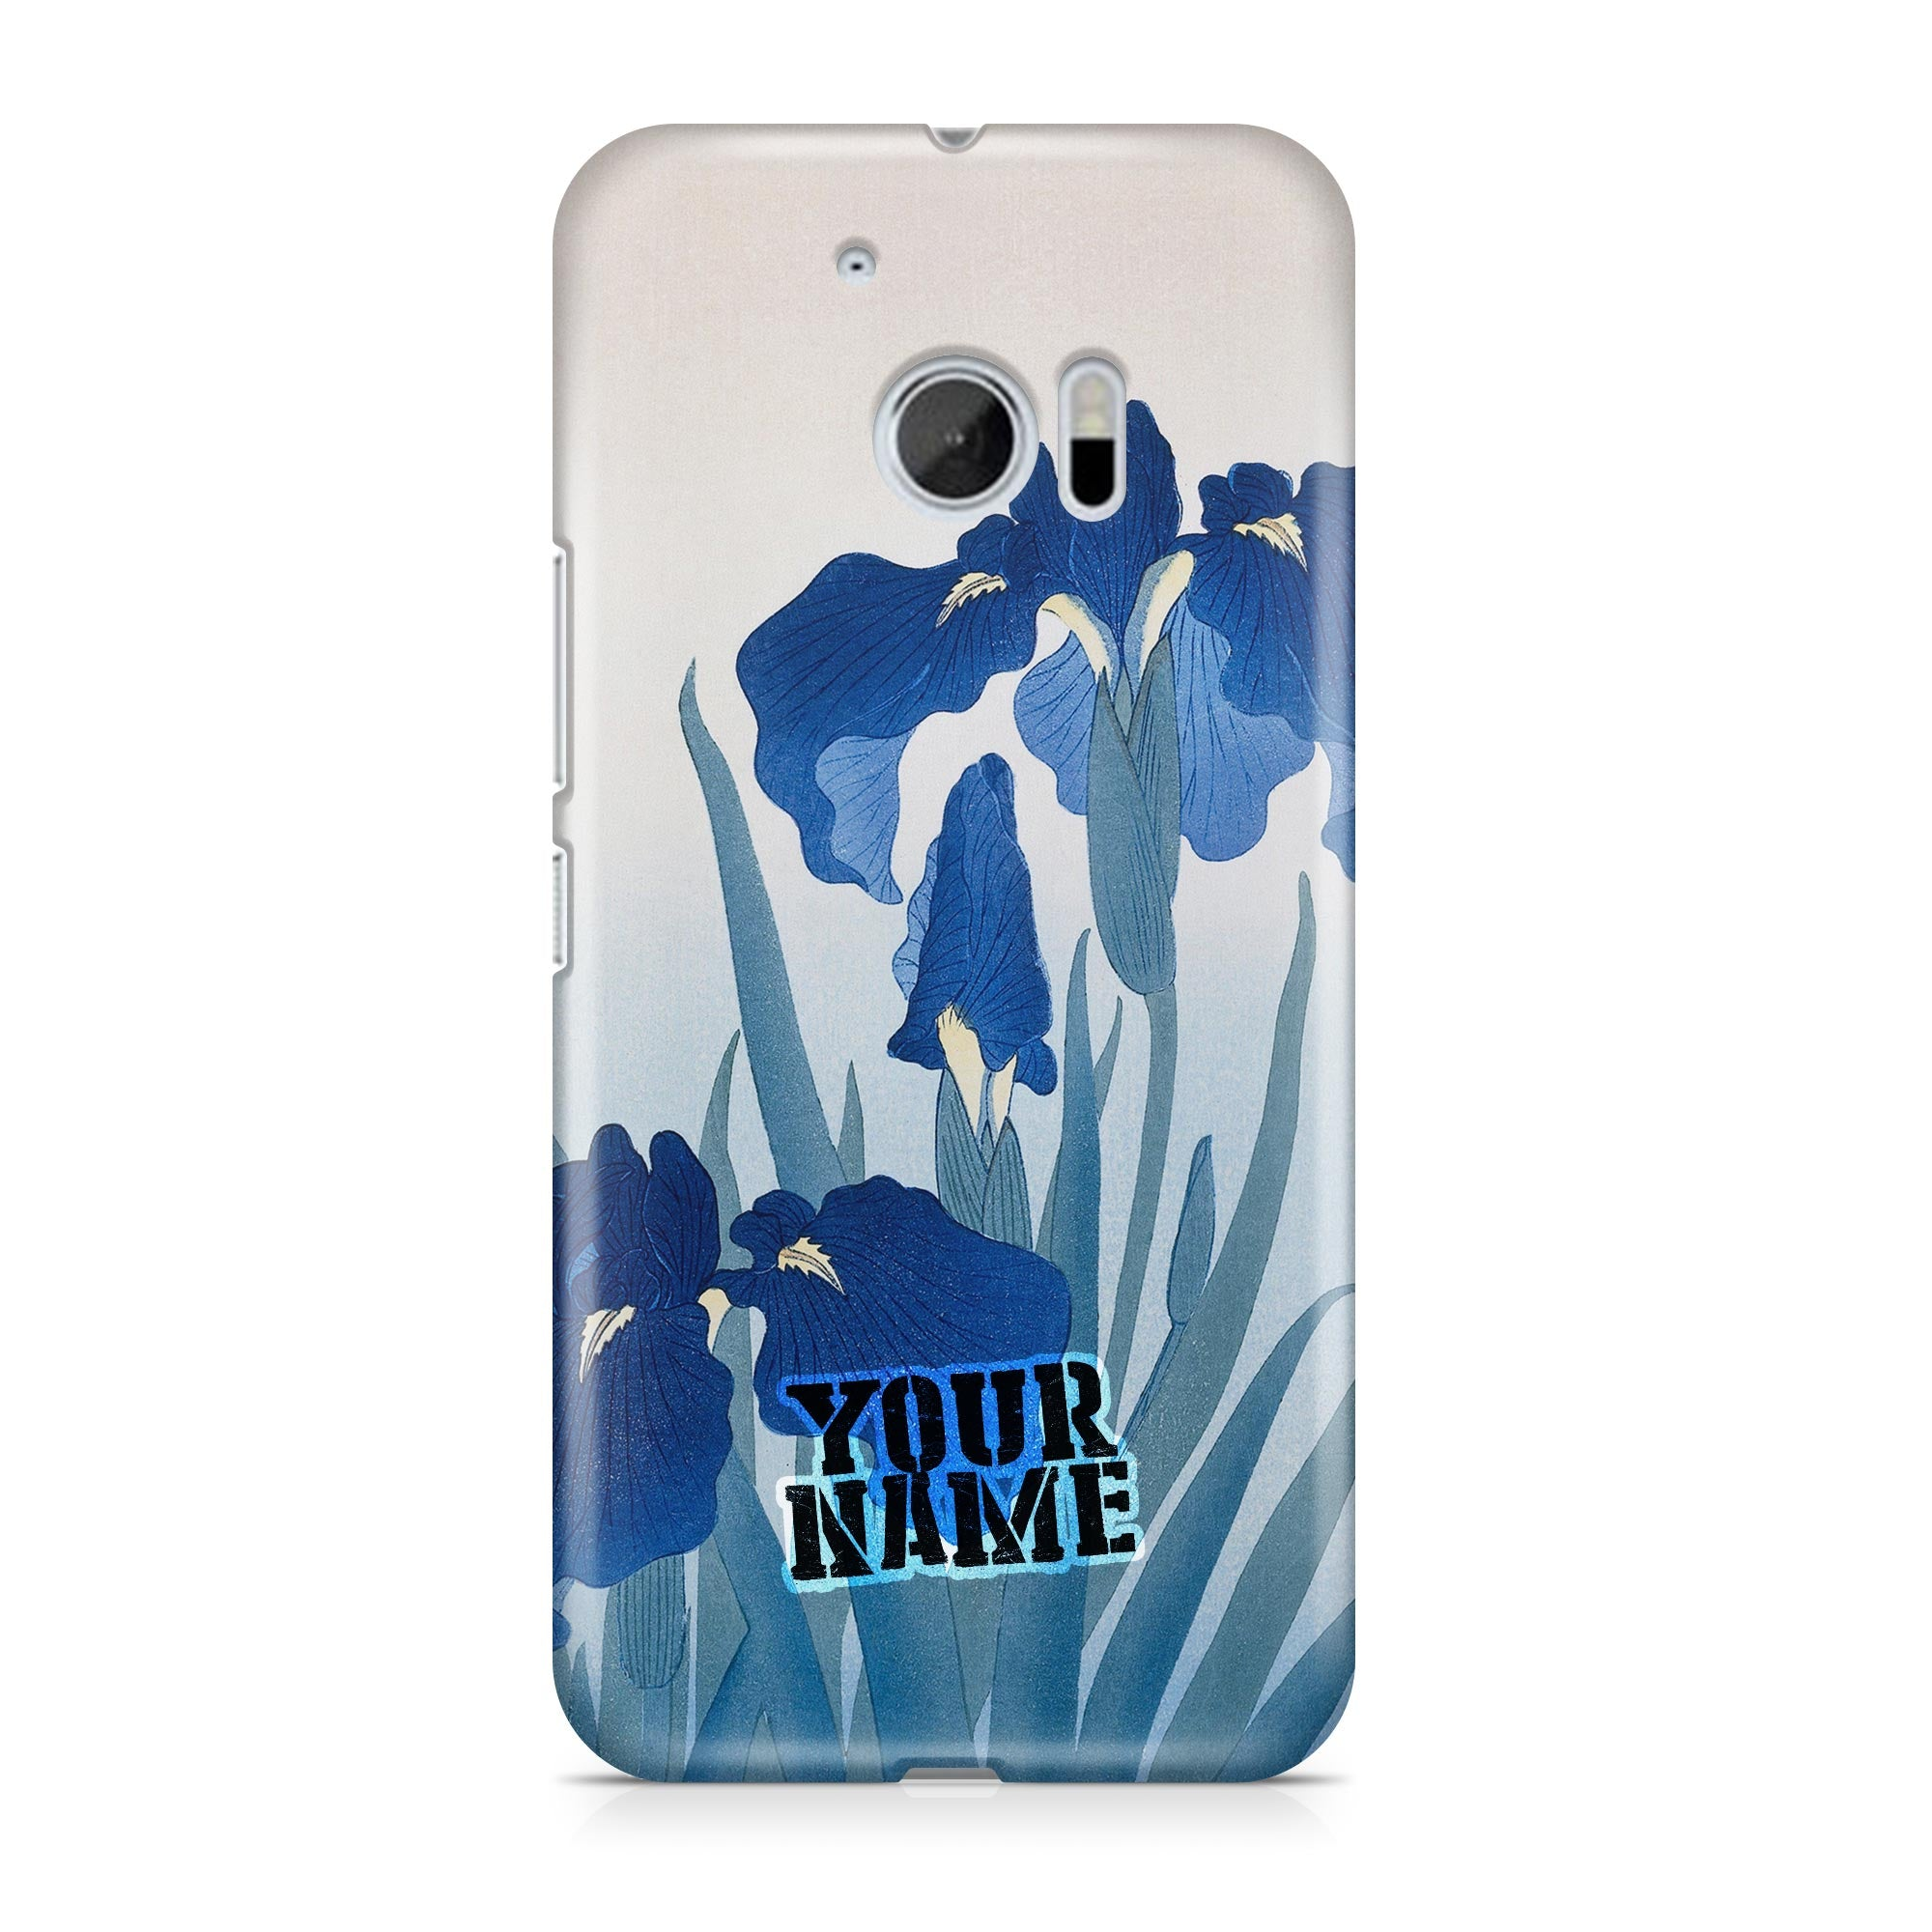 Blue Flower Art Japanese Wall Hard Phone Cases Cover